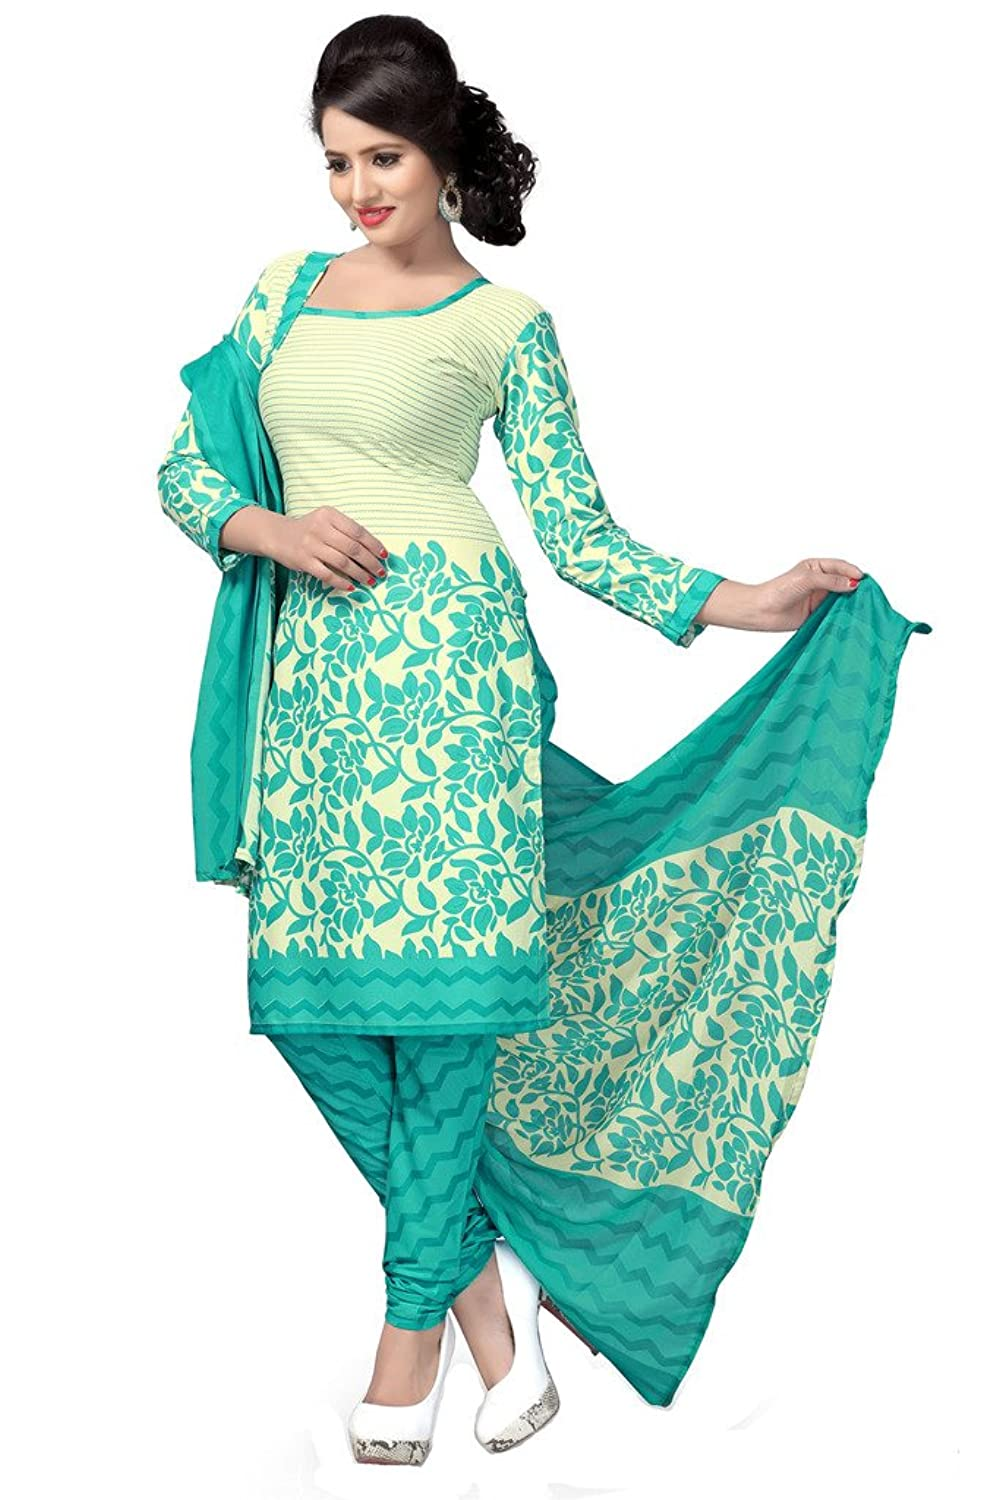 Pictures of different types of dress materials for ladies